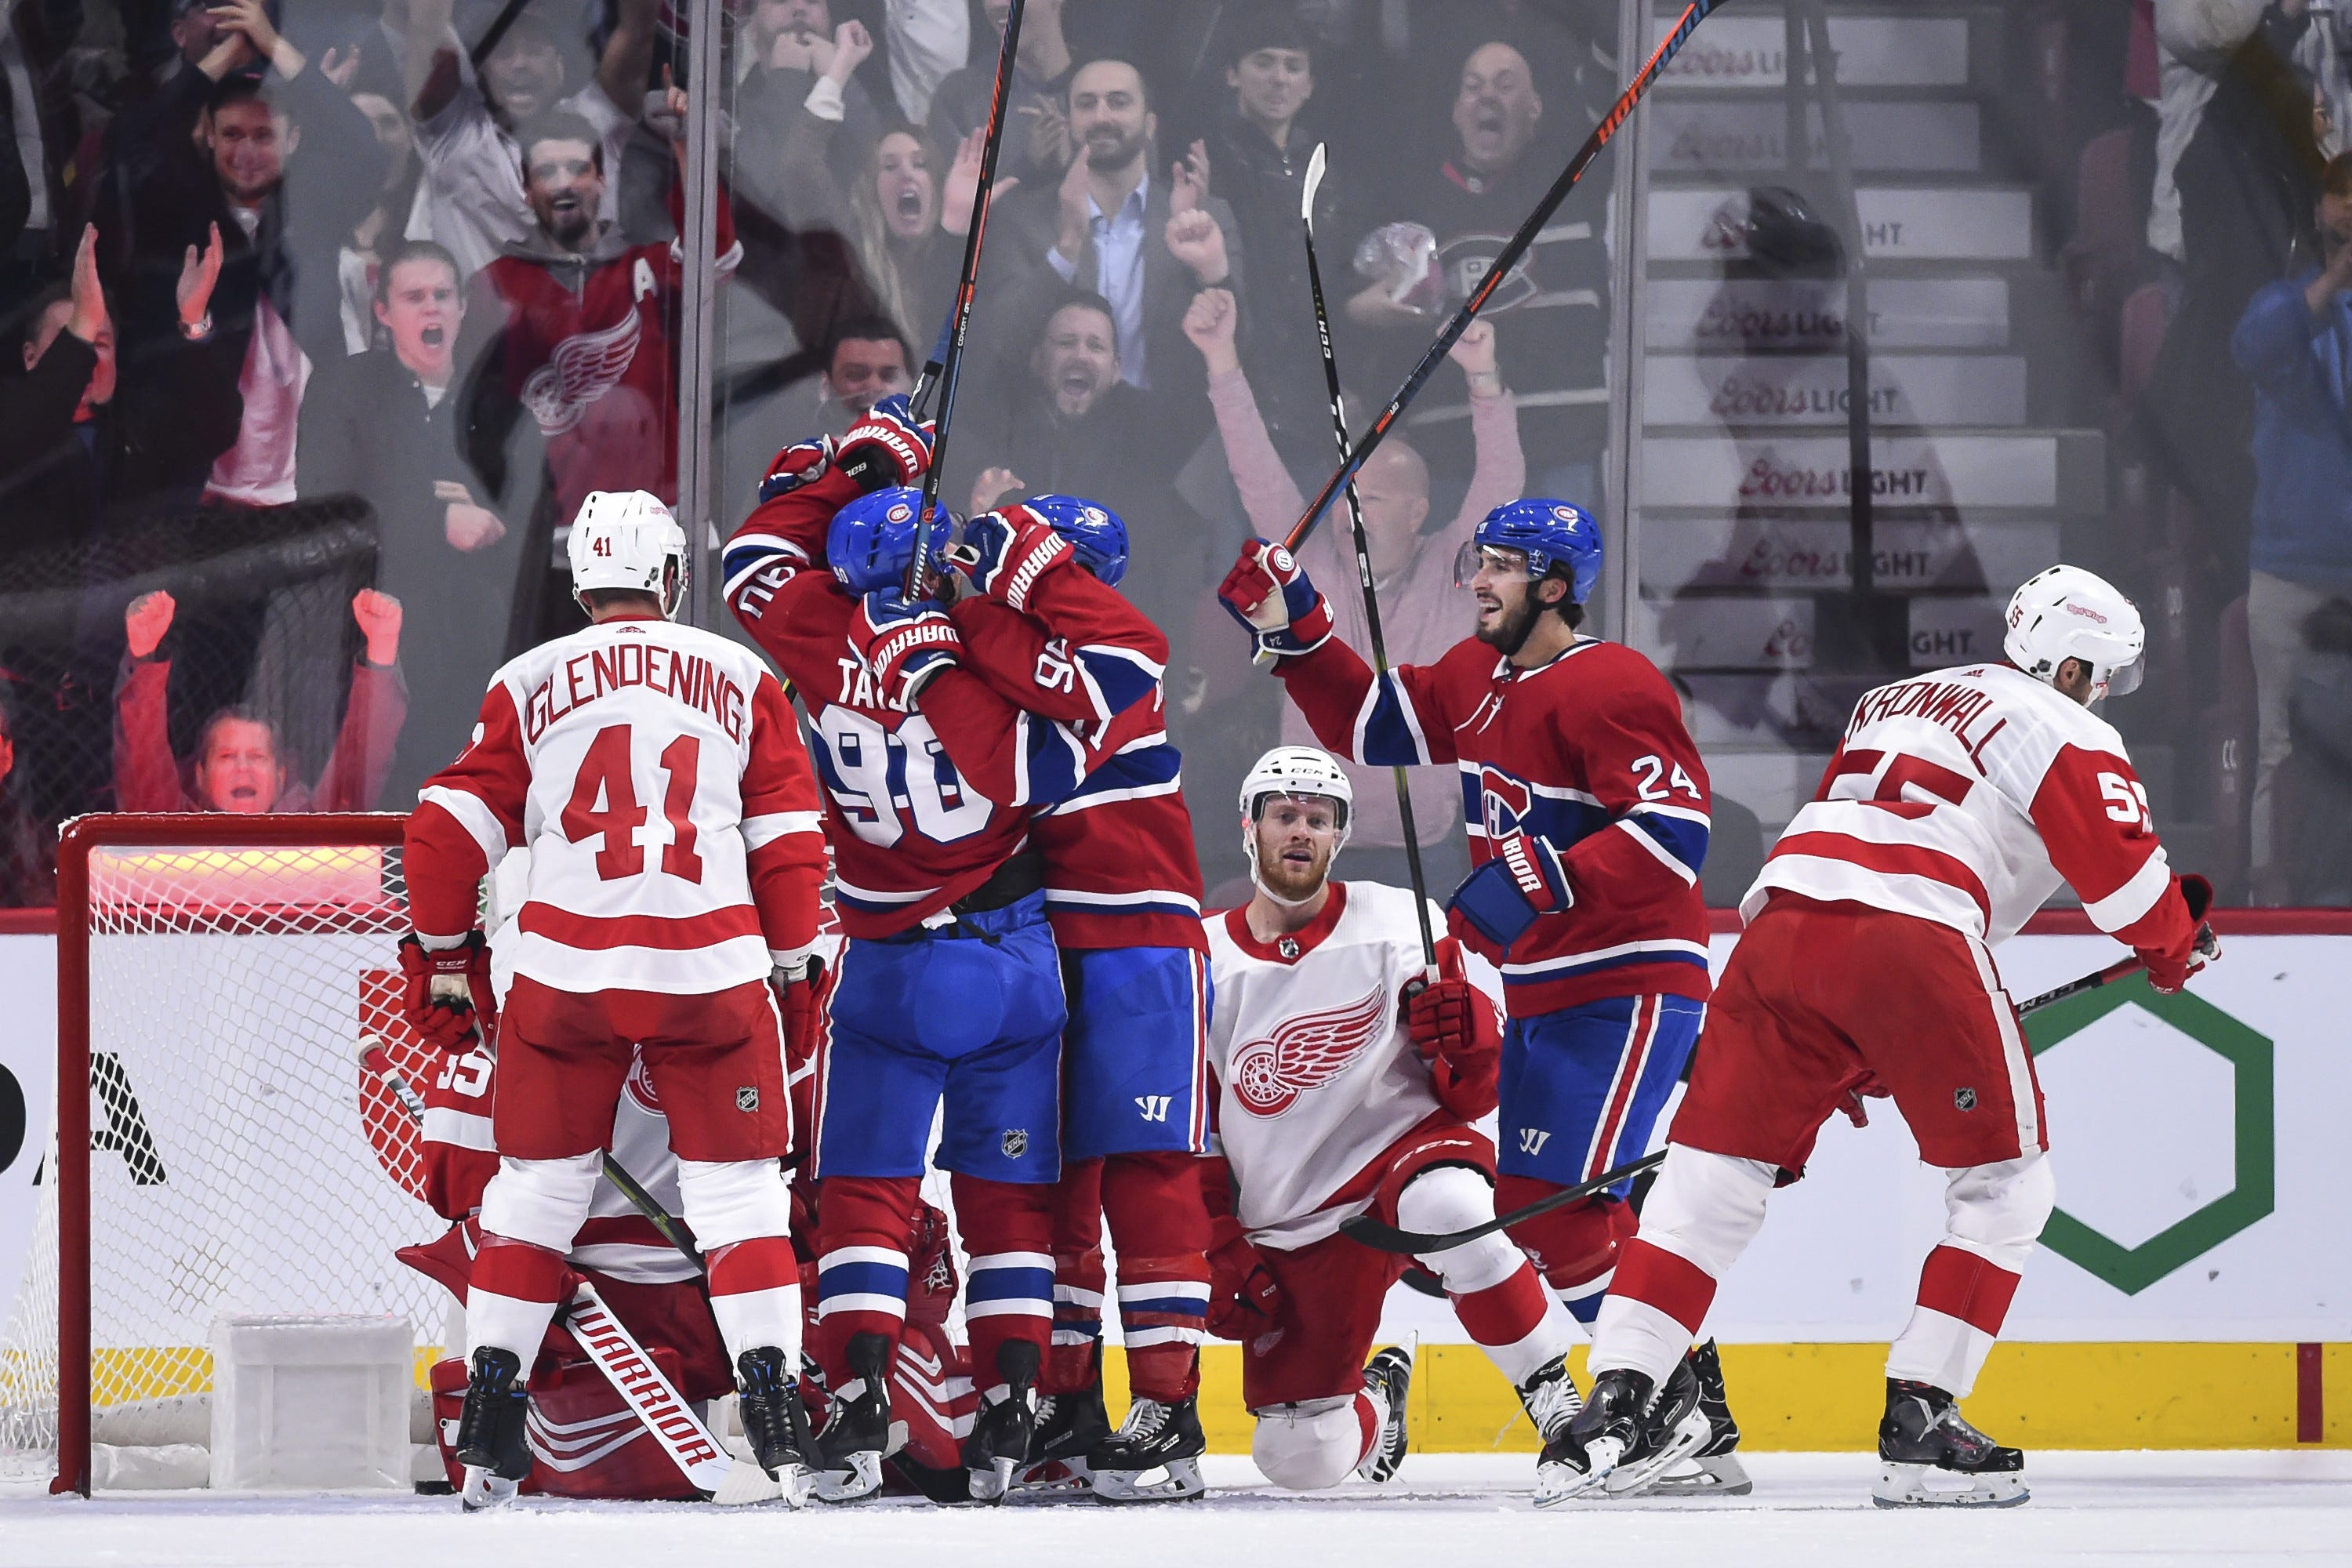 Detroit Red Wings makea mockery of themselves in 7-3 loss to Montreal